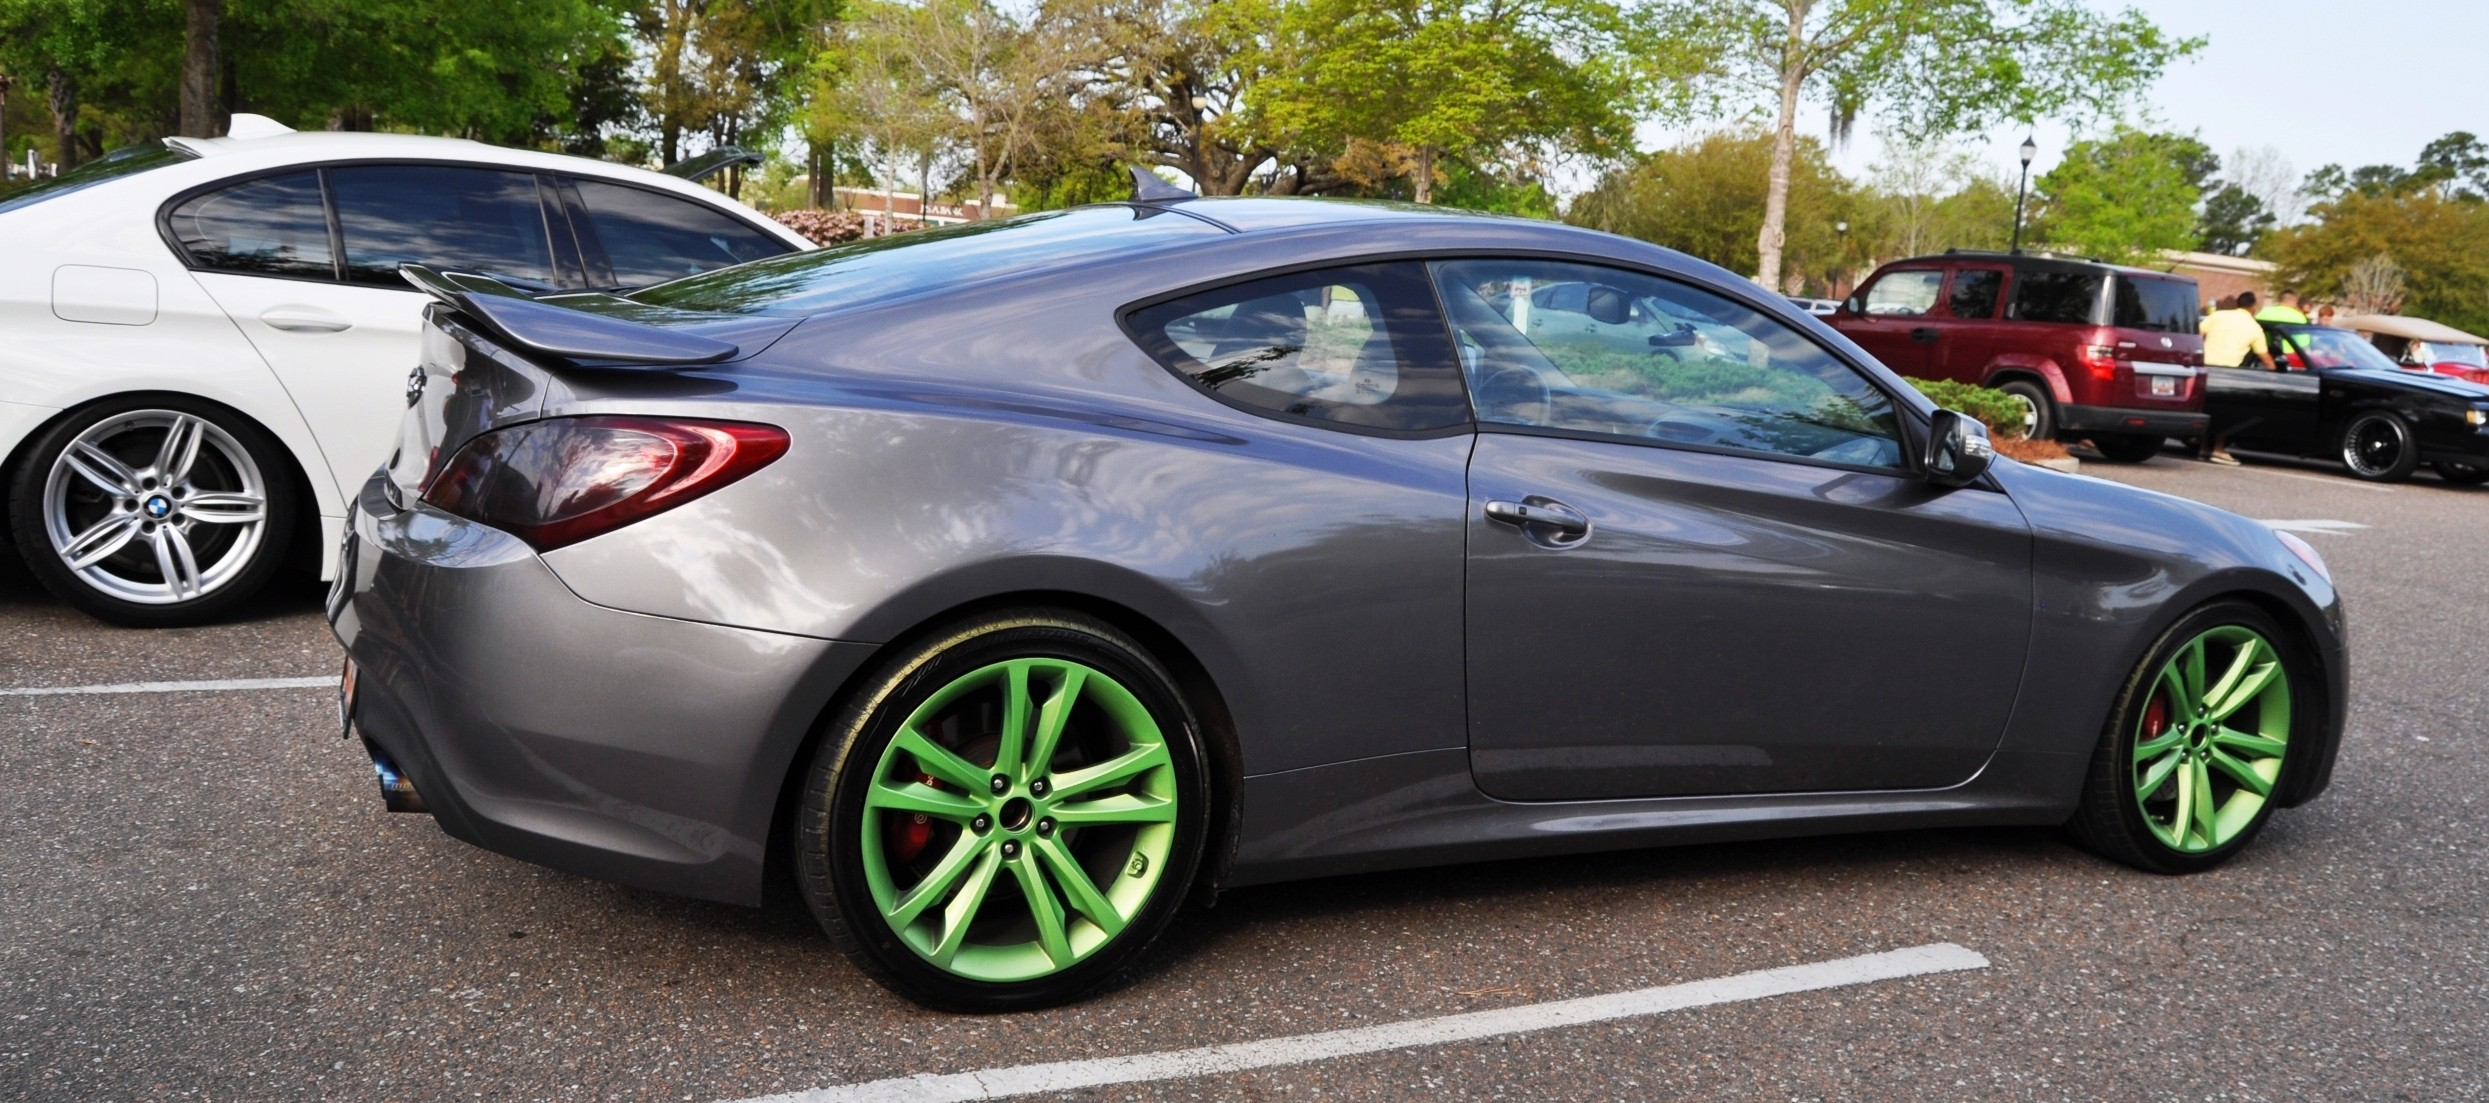 2014 hyundai genesis coupe 3 6 r spec at cars coffee wearing custom lime green wheels. Black Bedroom Furniture Sets. Home Design Ideas